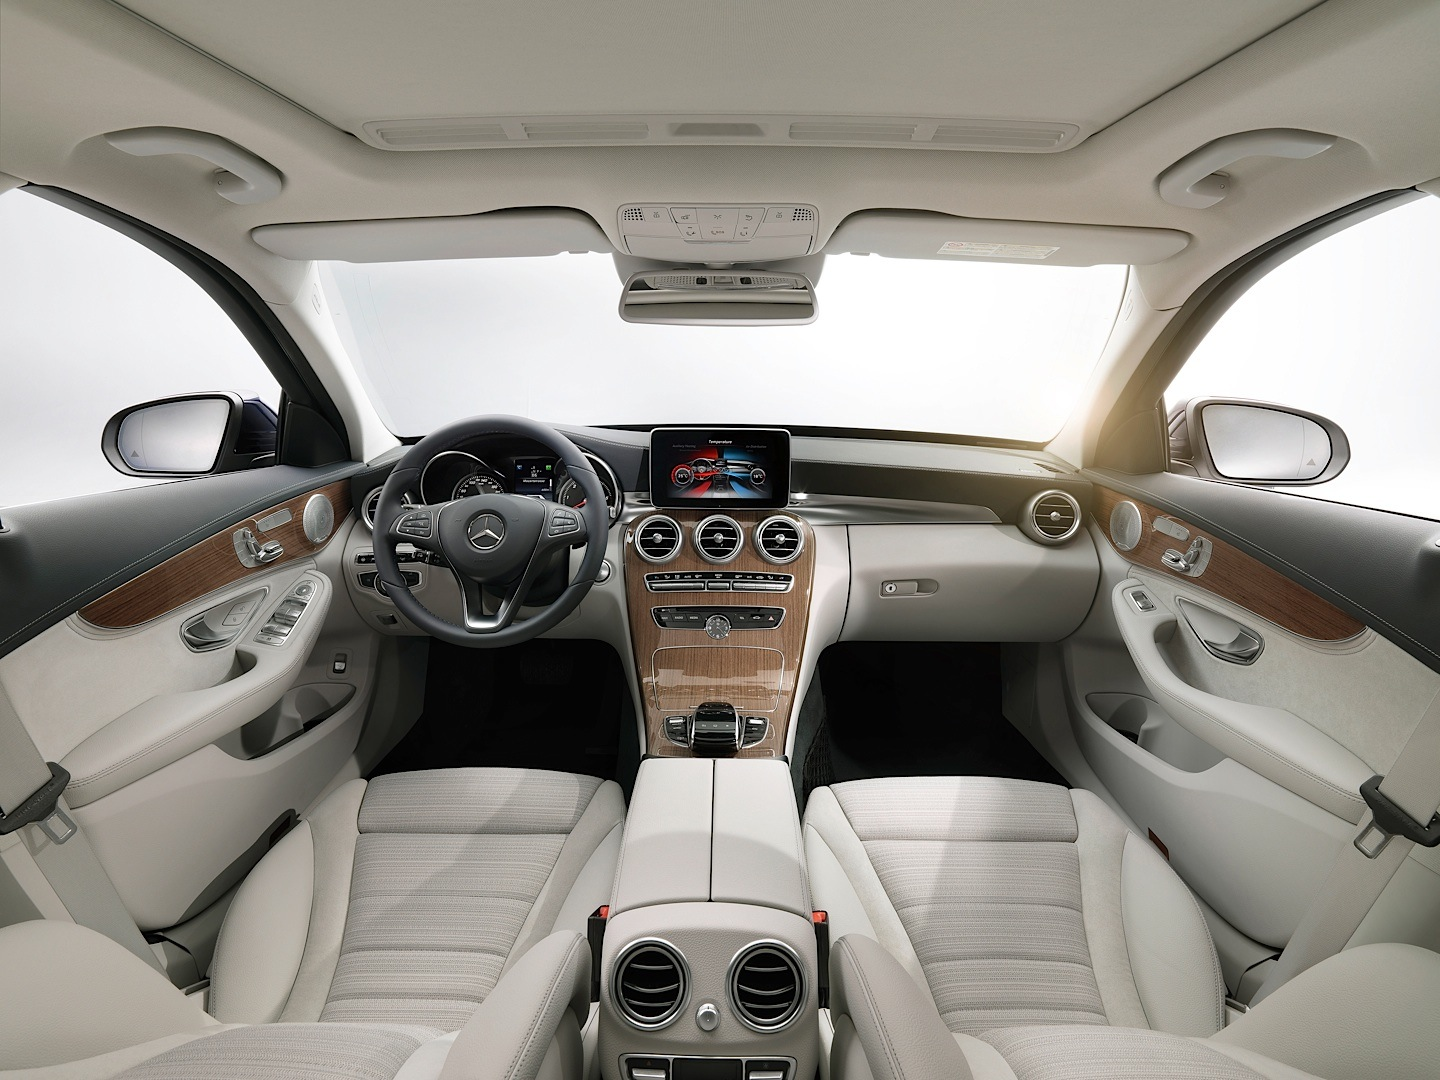 check-out-the-first-official-footage-with-the-new-c-class-w205-video-1080p-1